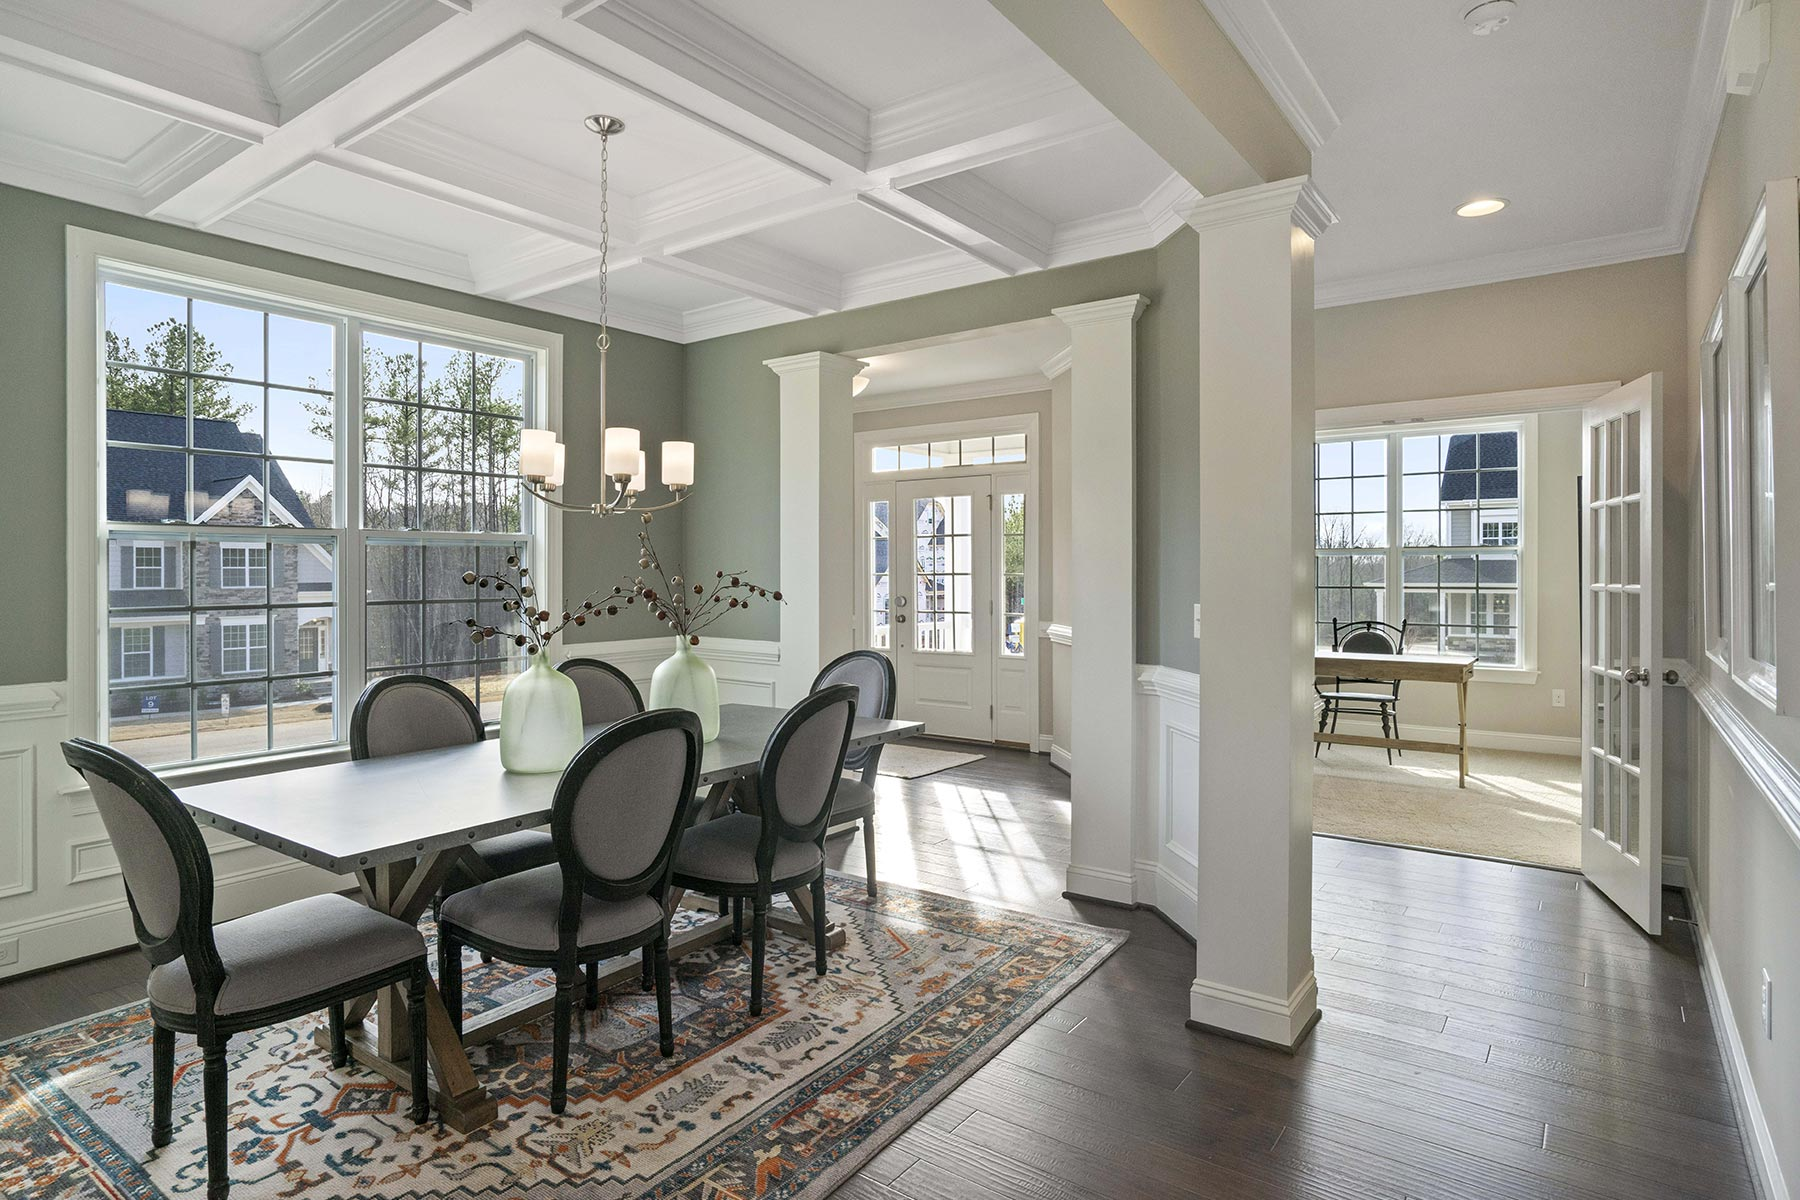 Juniper Plan Dining at Ballentine Place in Holly Springs North Carolina by Mattamy Homes